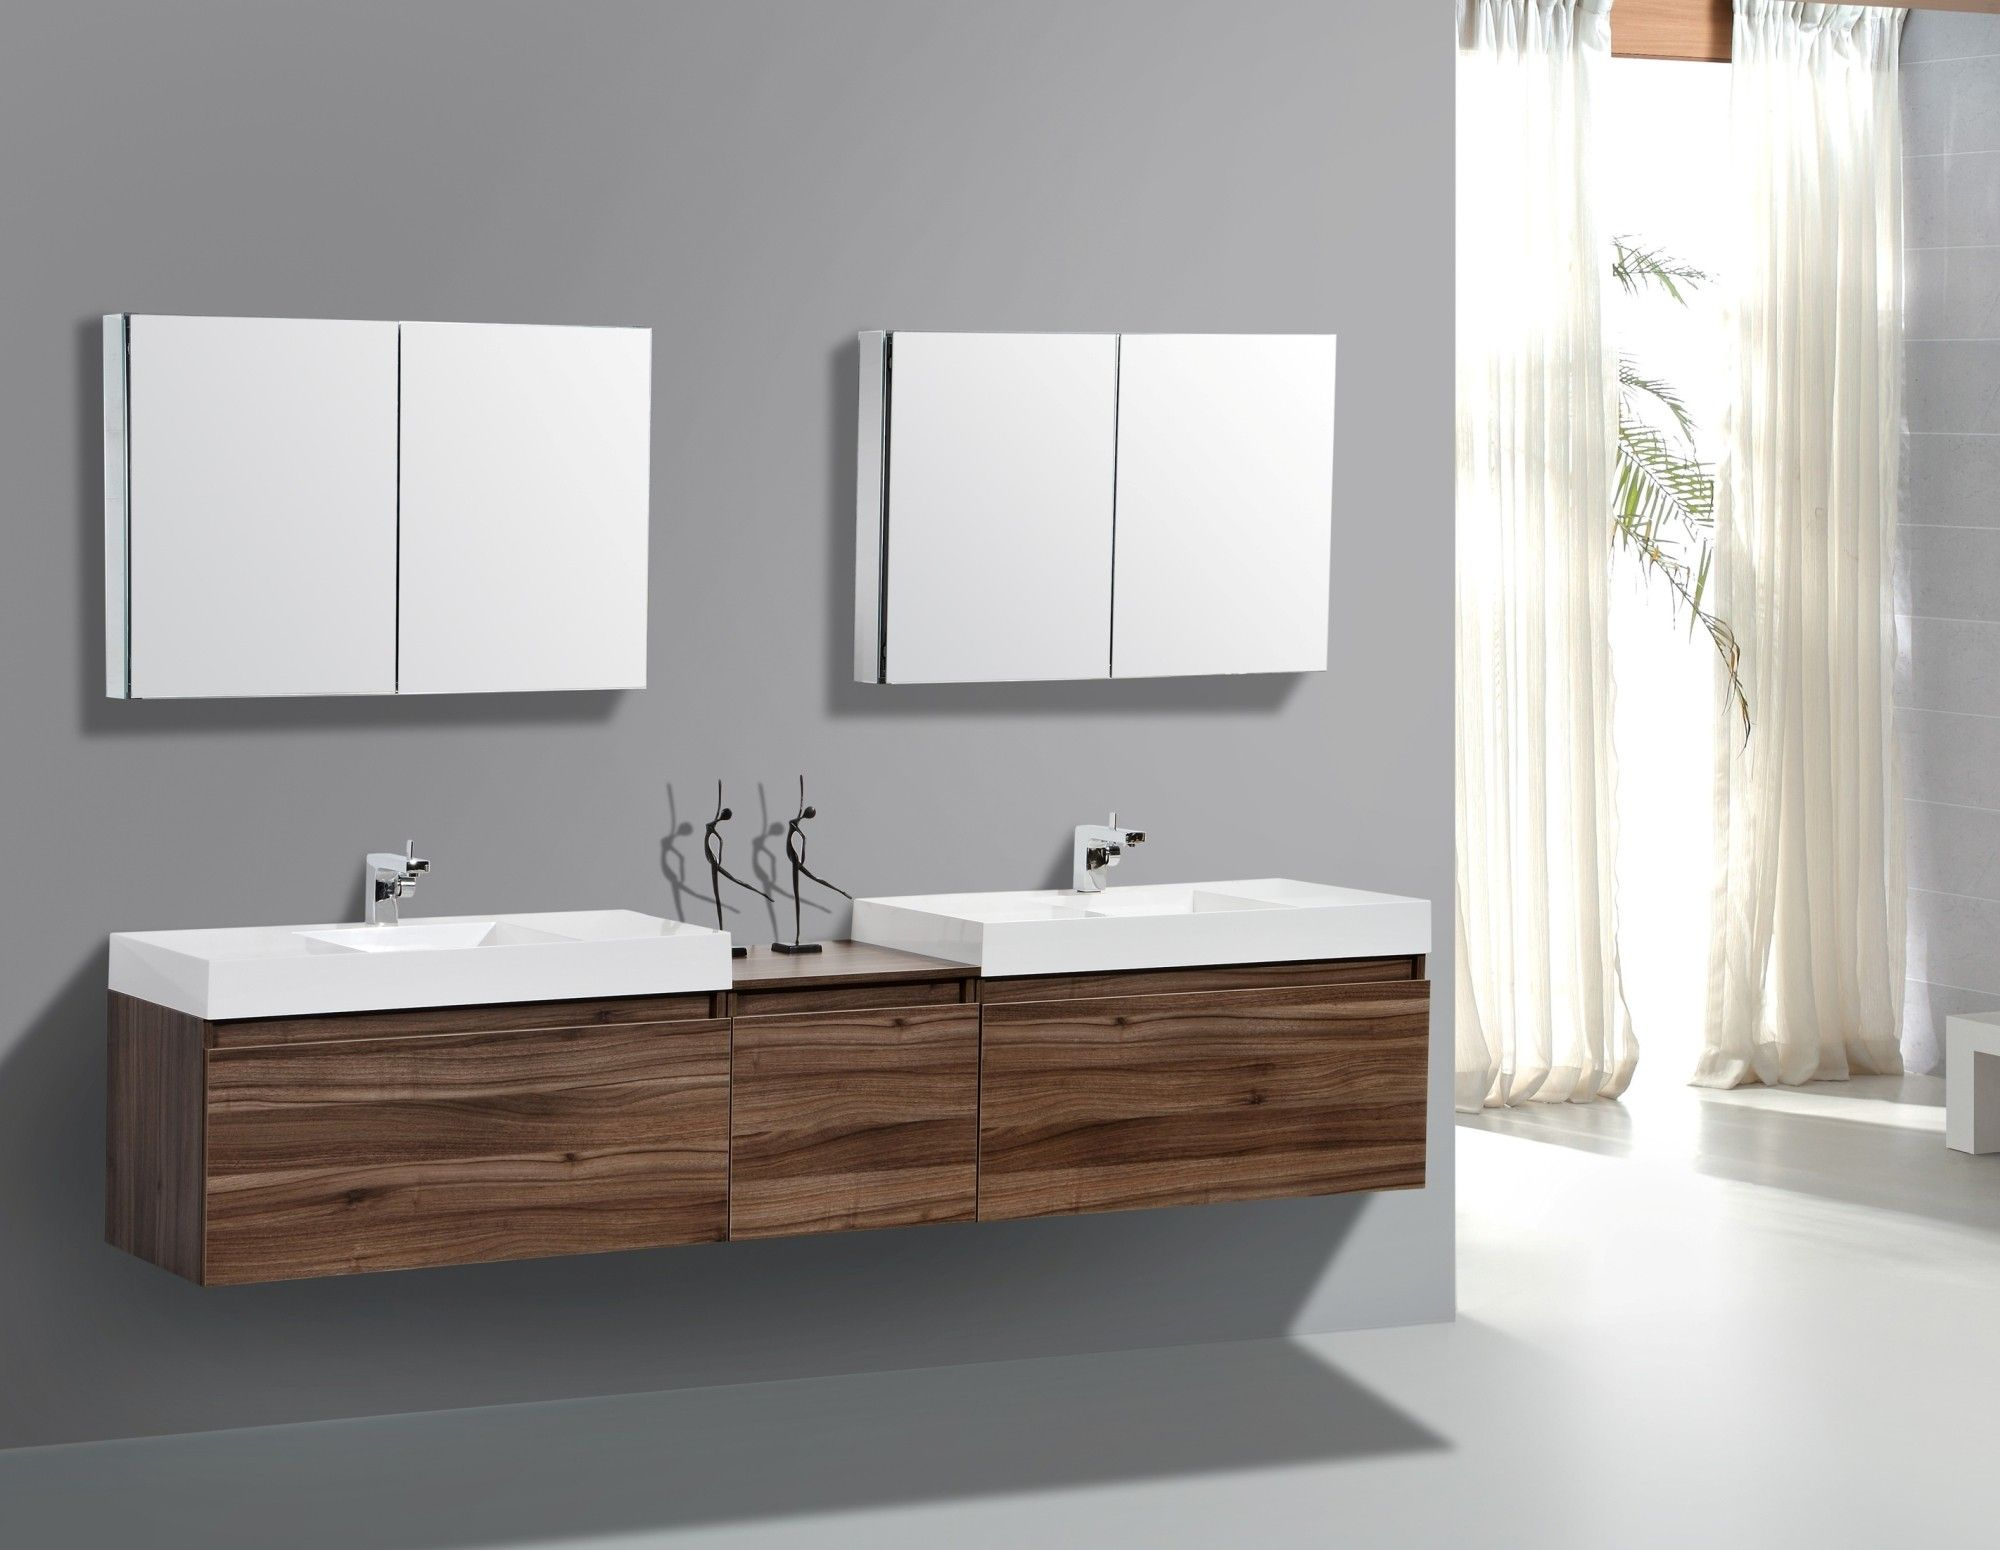 top 23 designs of modern bathroom vanitiesvanities vanity - Bathroom Cabinet Design Ideas